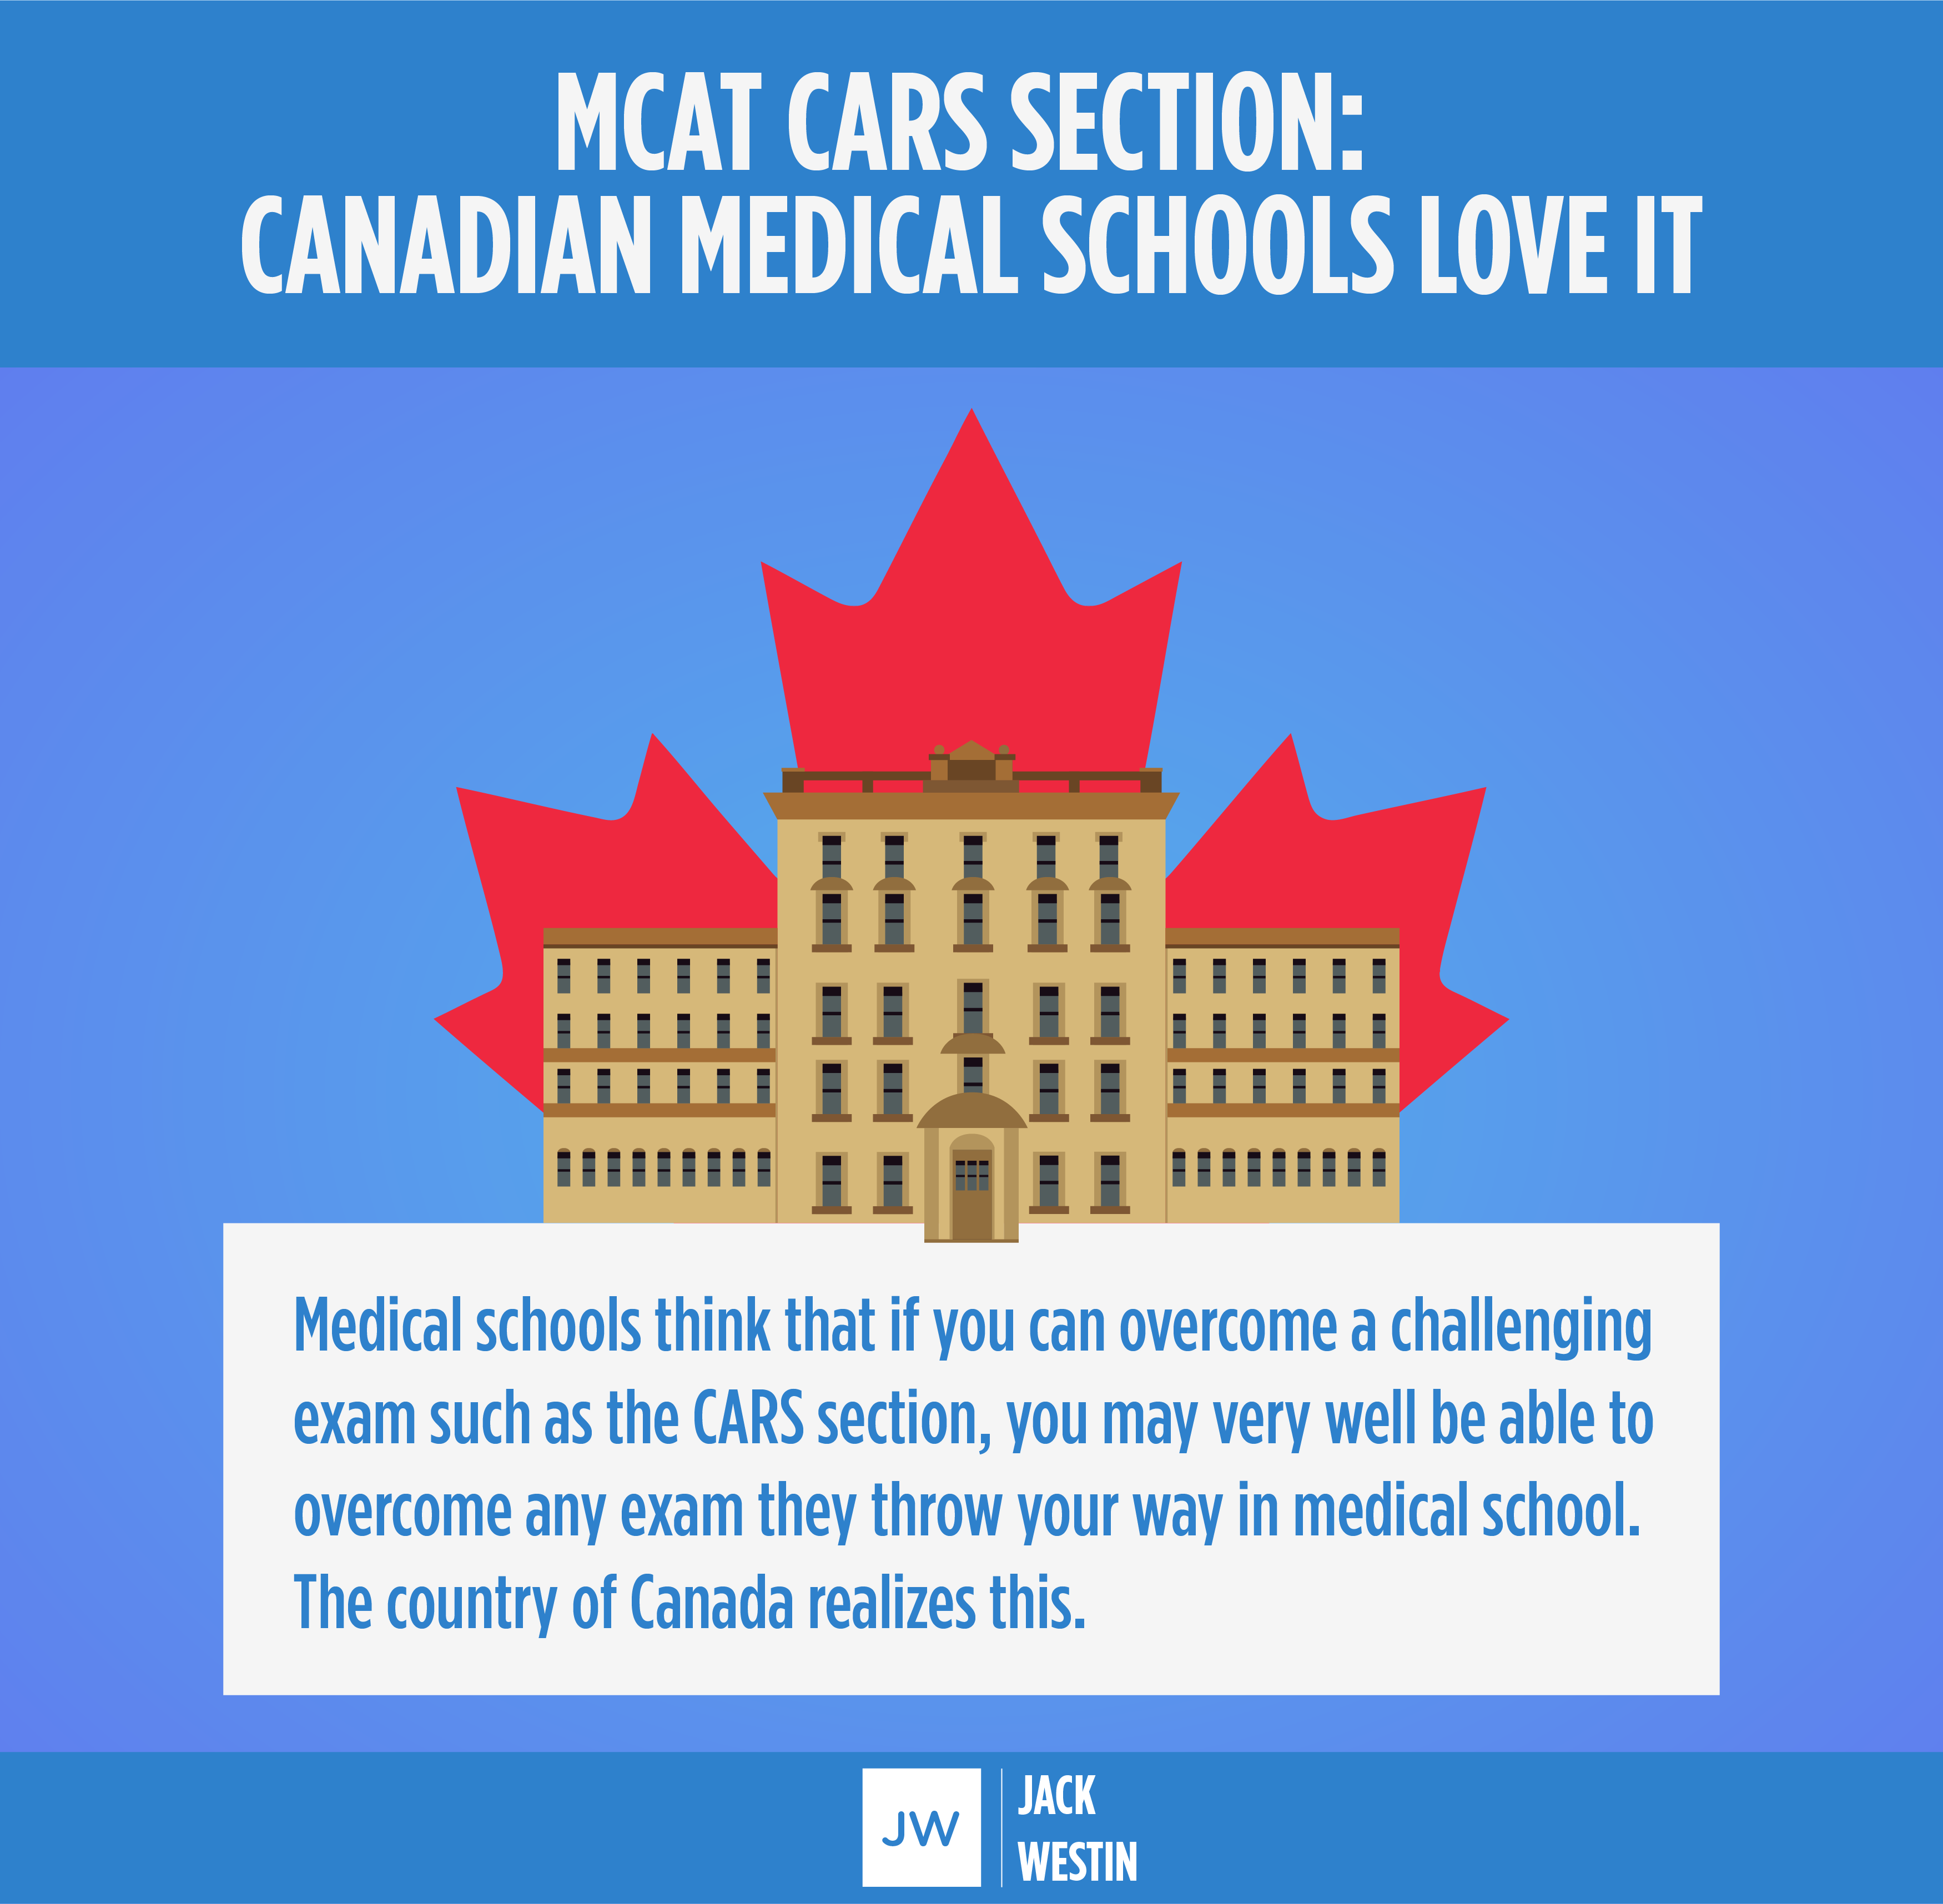 Jack Westin's insight into why Canadian Medical Schools Love the CARS Section.